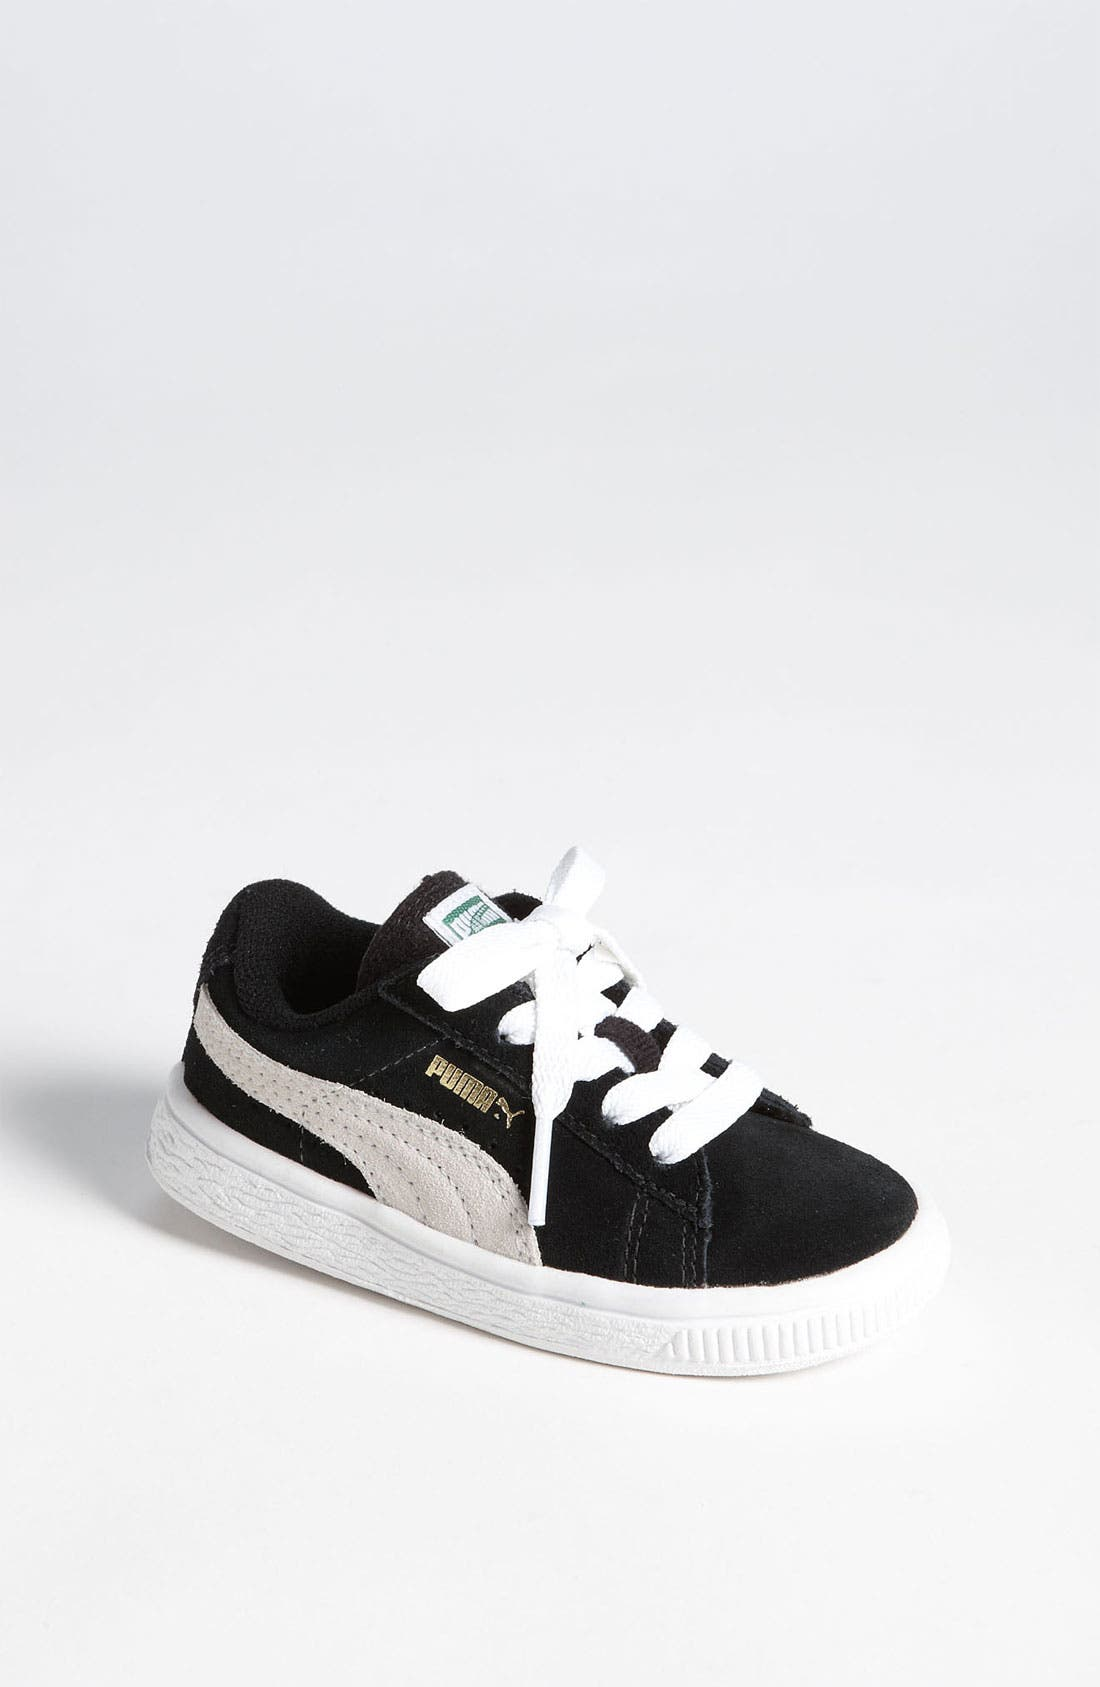 Alternate Image 1 Selected - PUMA 'Suede Classic' Sneaker (Baby, Walker, Toddler, Little Kid & Big Kid)